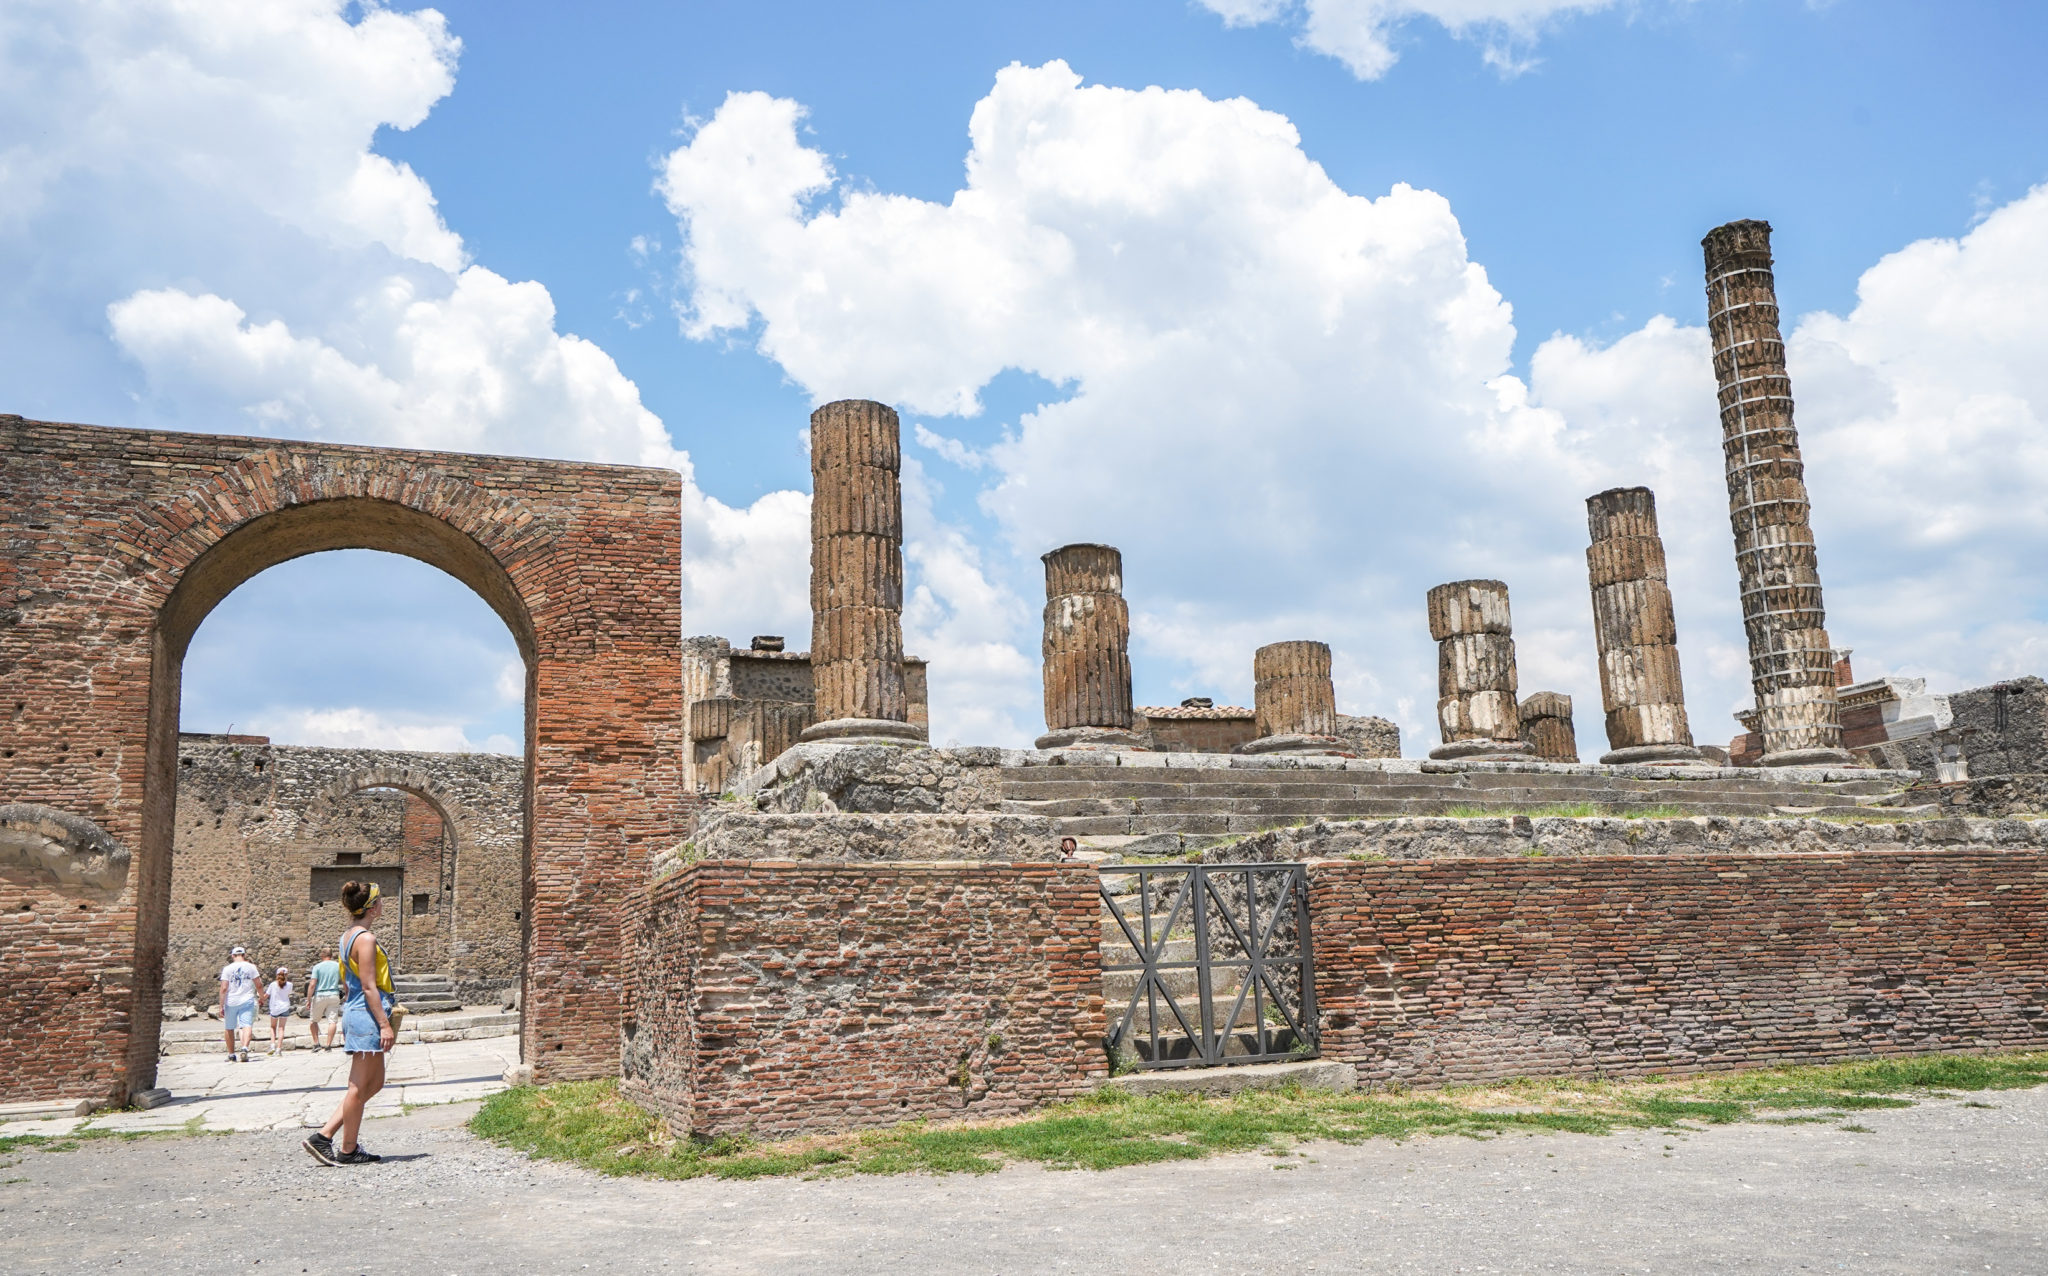 Visite-pompei-comment-forum-place-ruines